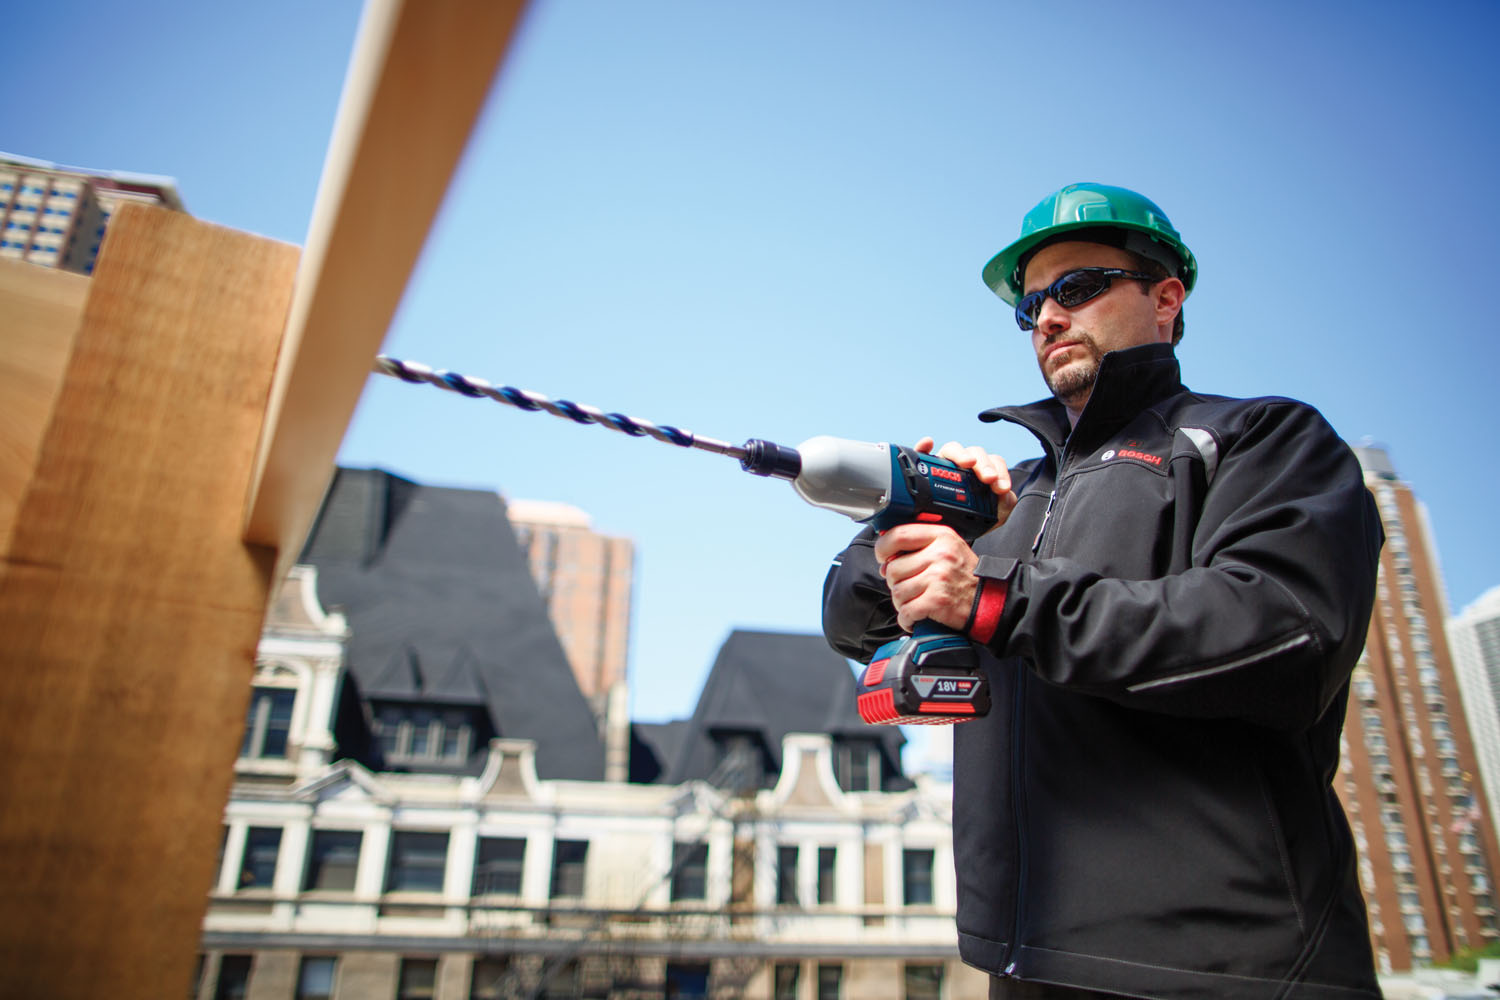 Heated Jackets For A Comfortable Work Day Builder Magazine Tools Jacket Wiring And Equipment Jobsite